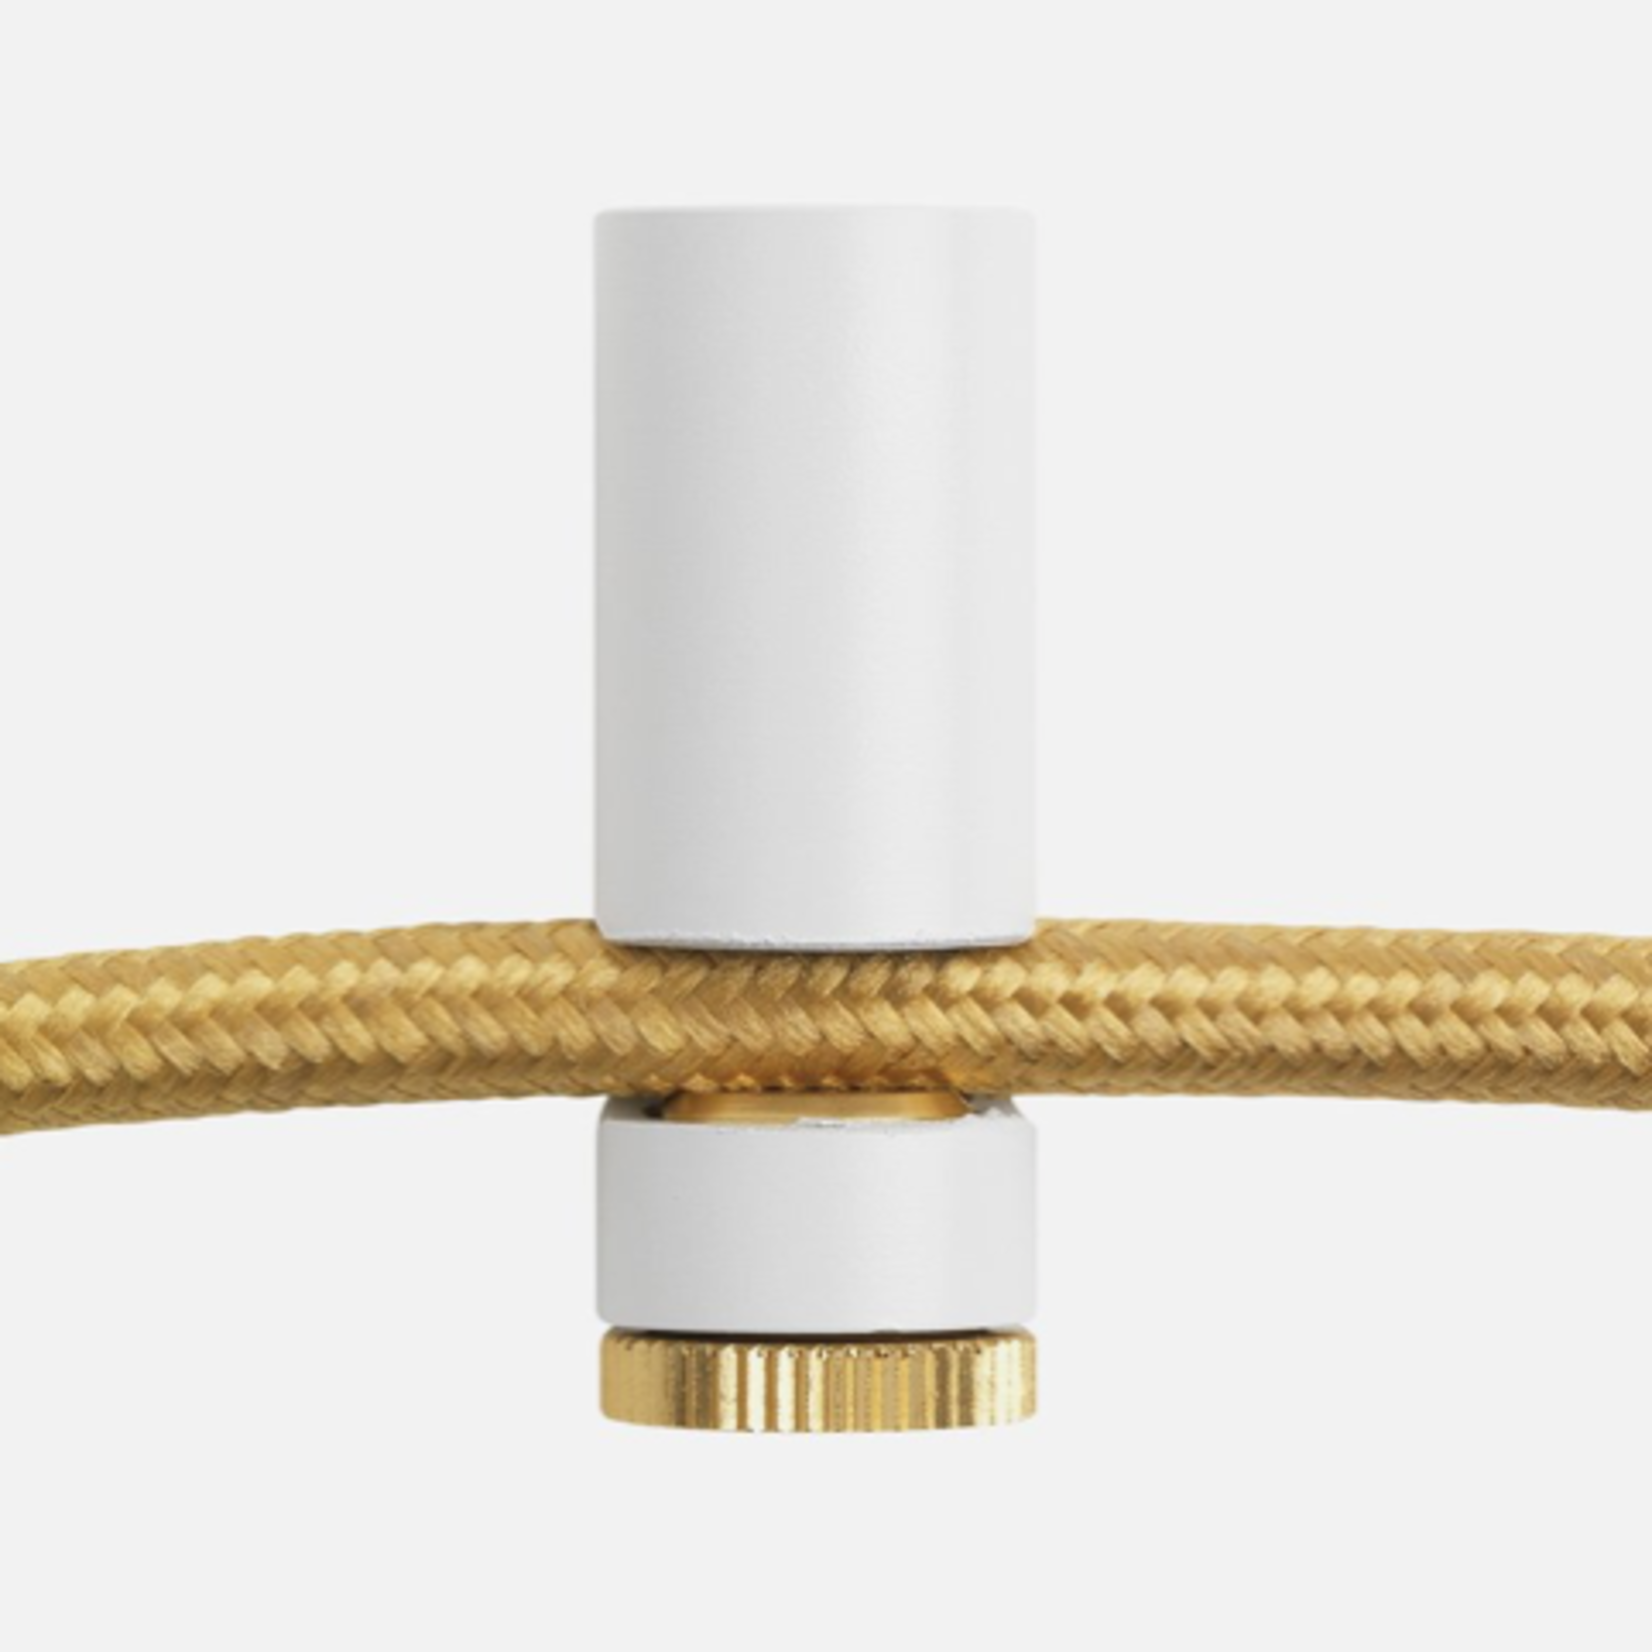 Plumen Cable Drop Ceiling Hook - White and Brass Cable Grip with Ceiling Screw